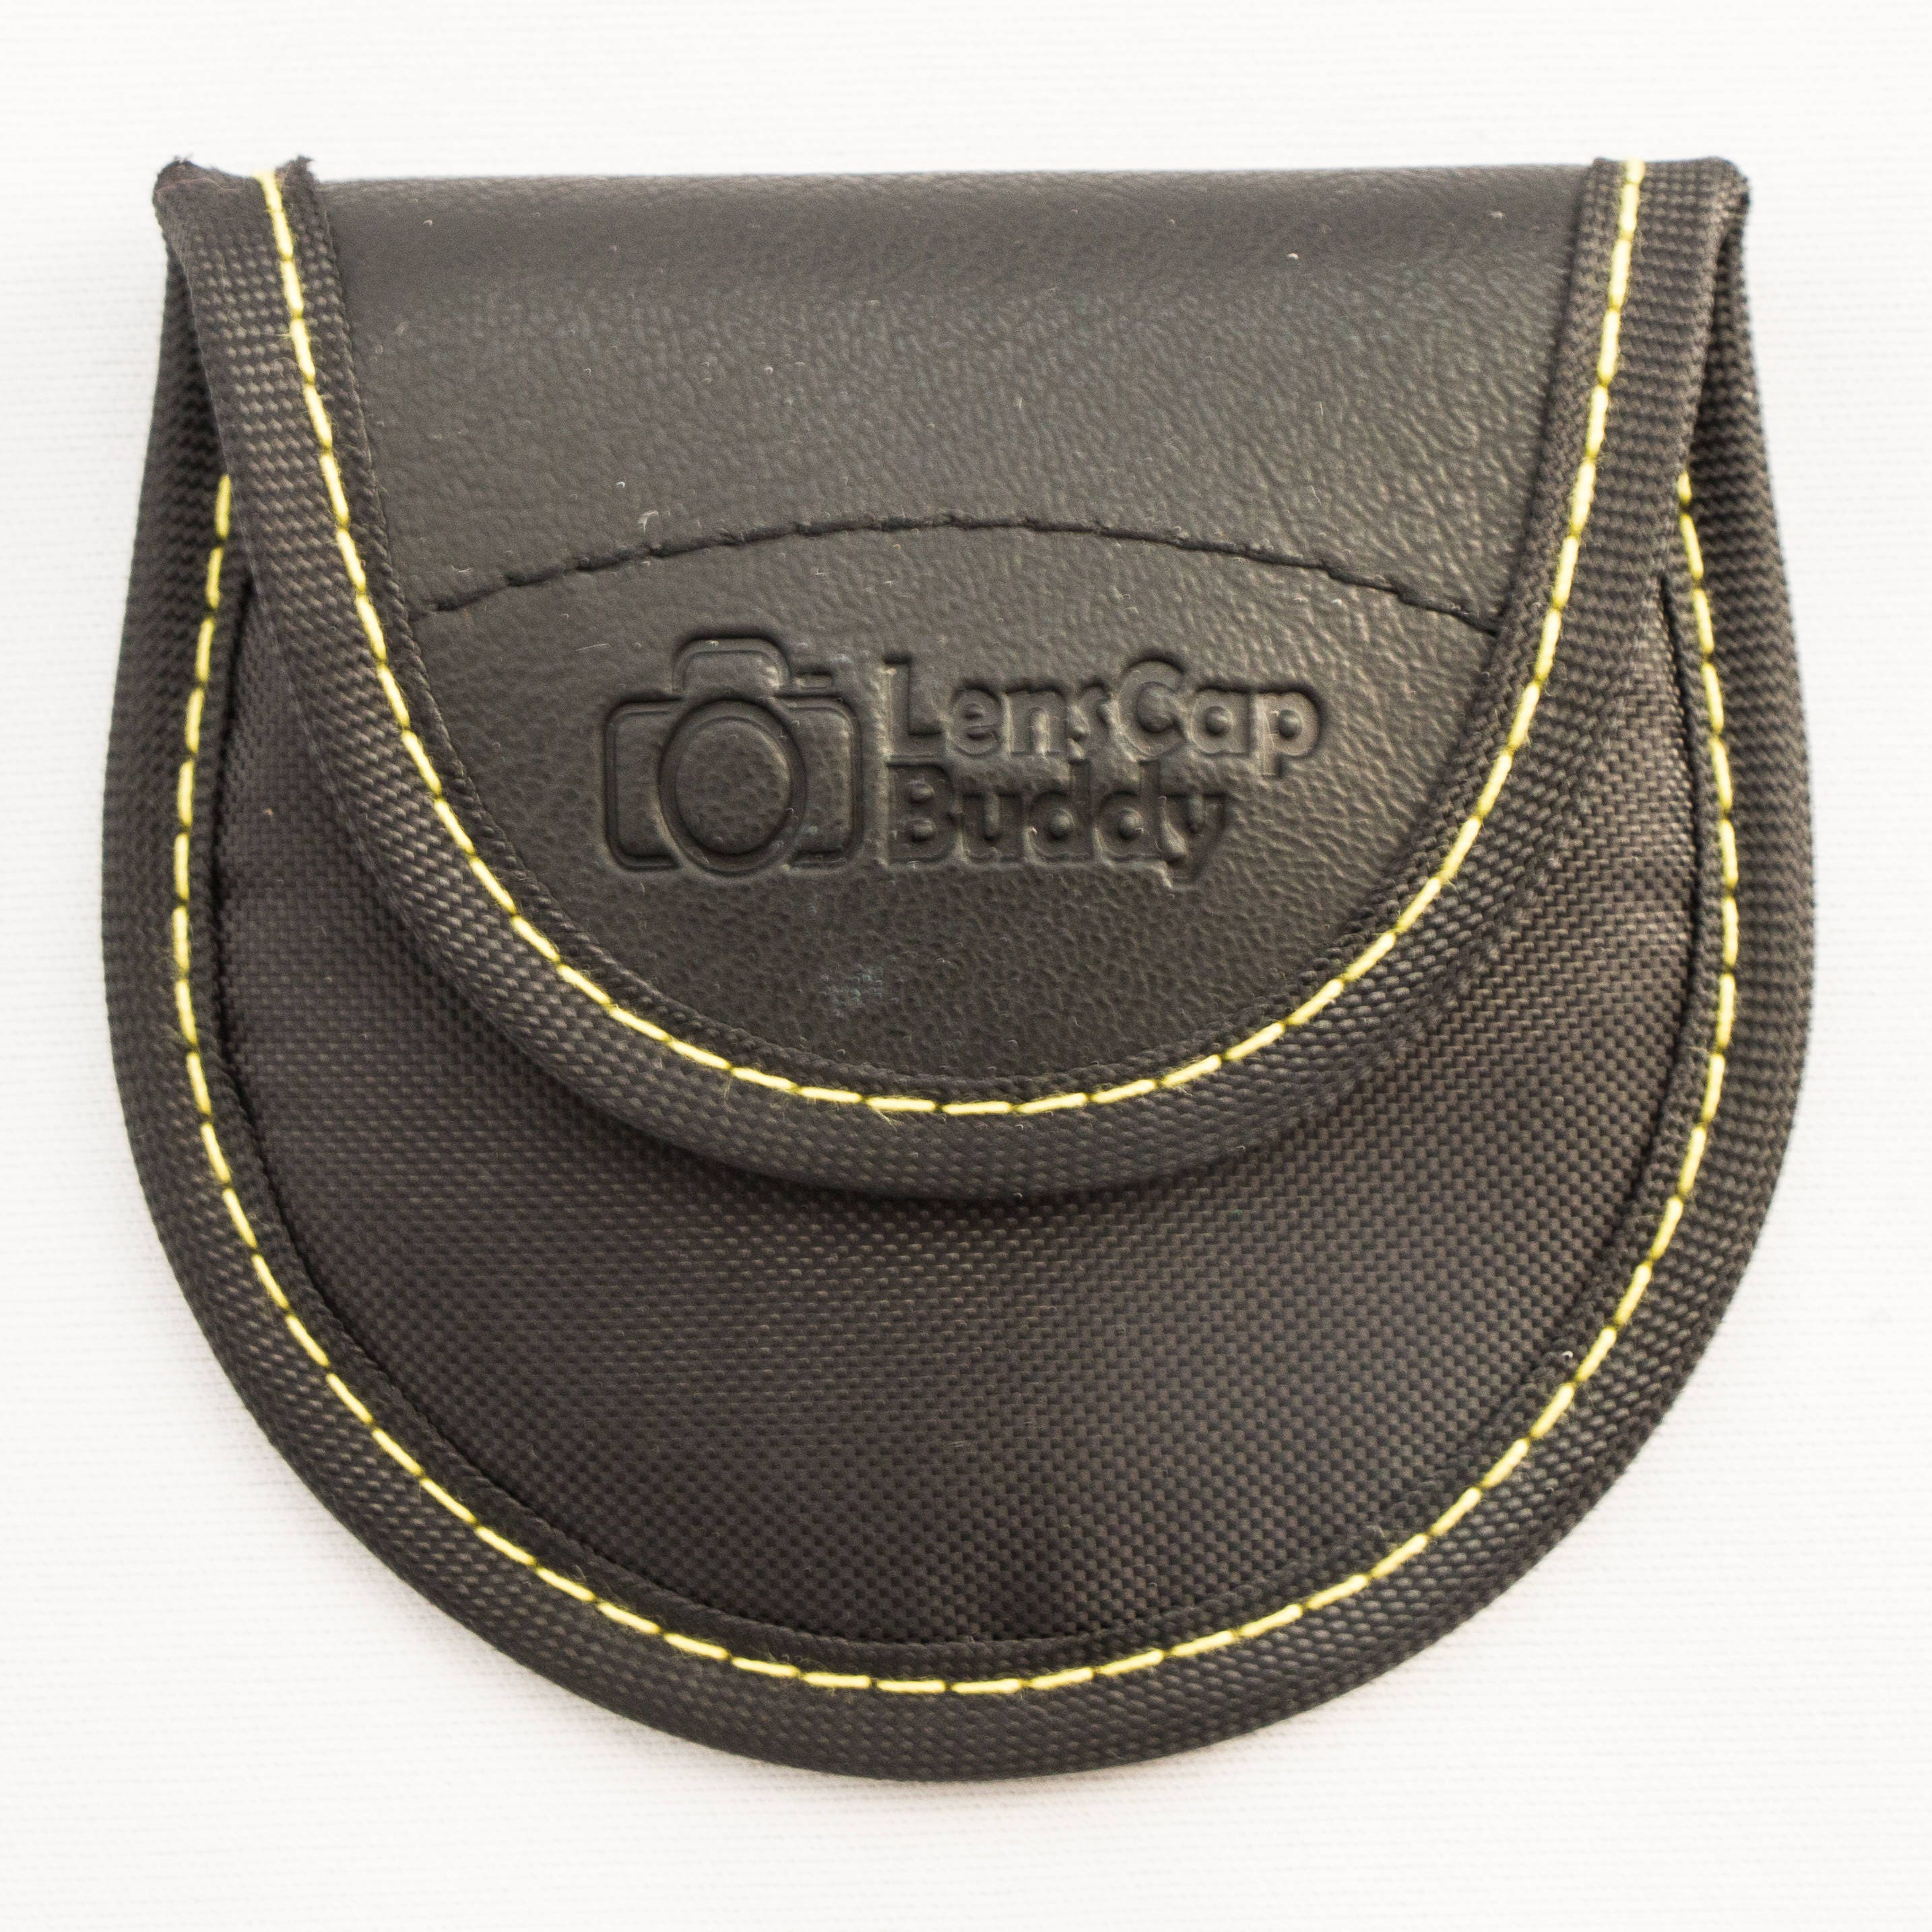 LensCap Buddy  Lens Cap Protector for Nikon  Perfect gift for photography lovers!